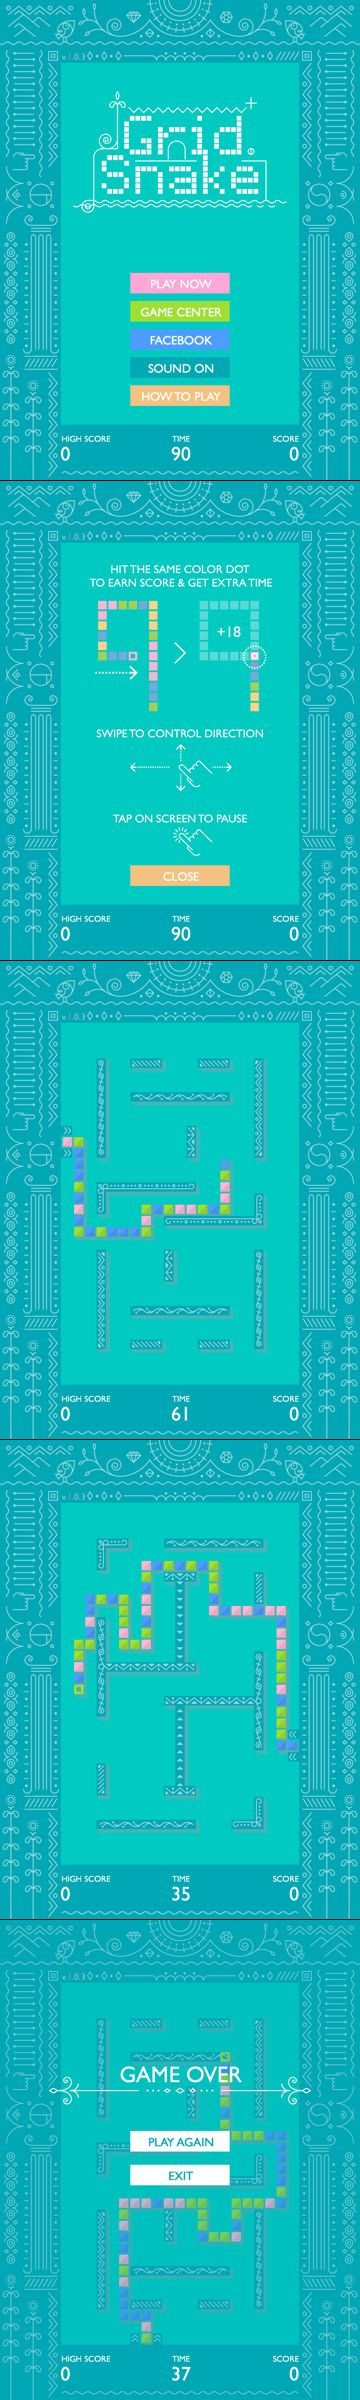 Grid Snake (Universal) // FREE iOS game // retro // The same classic snake game, but this time the snake bites itself.